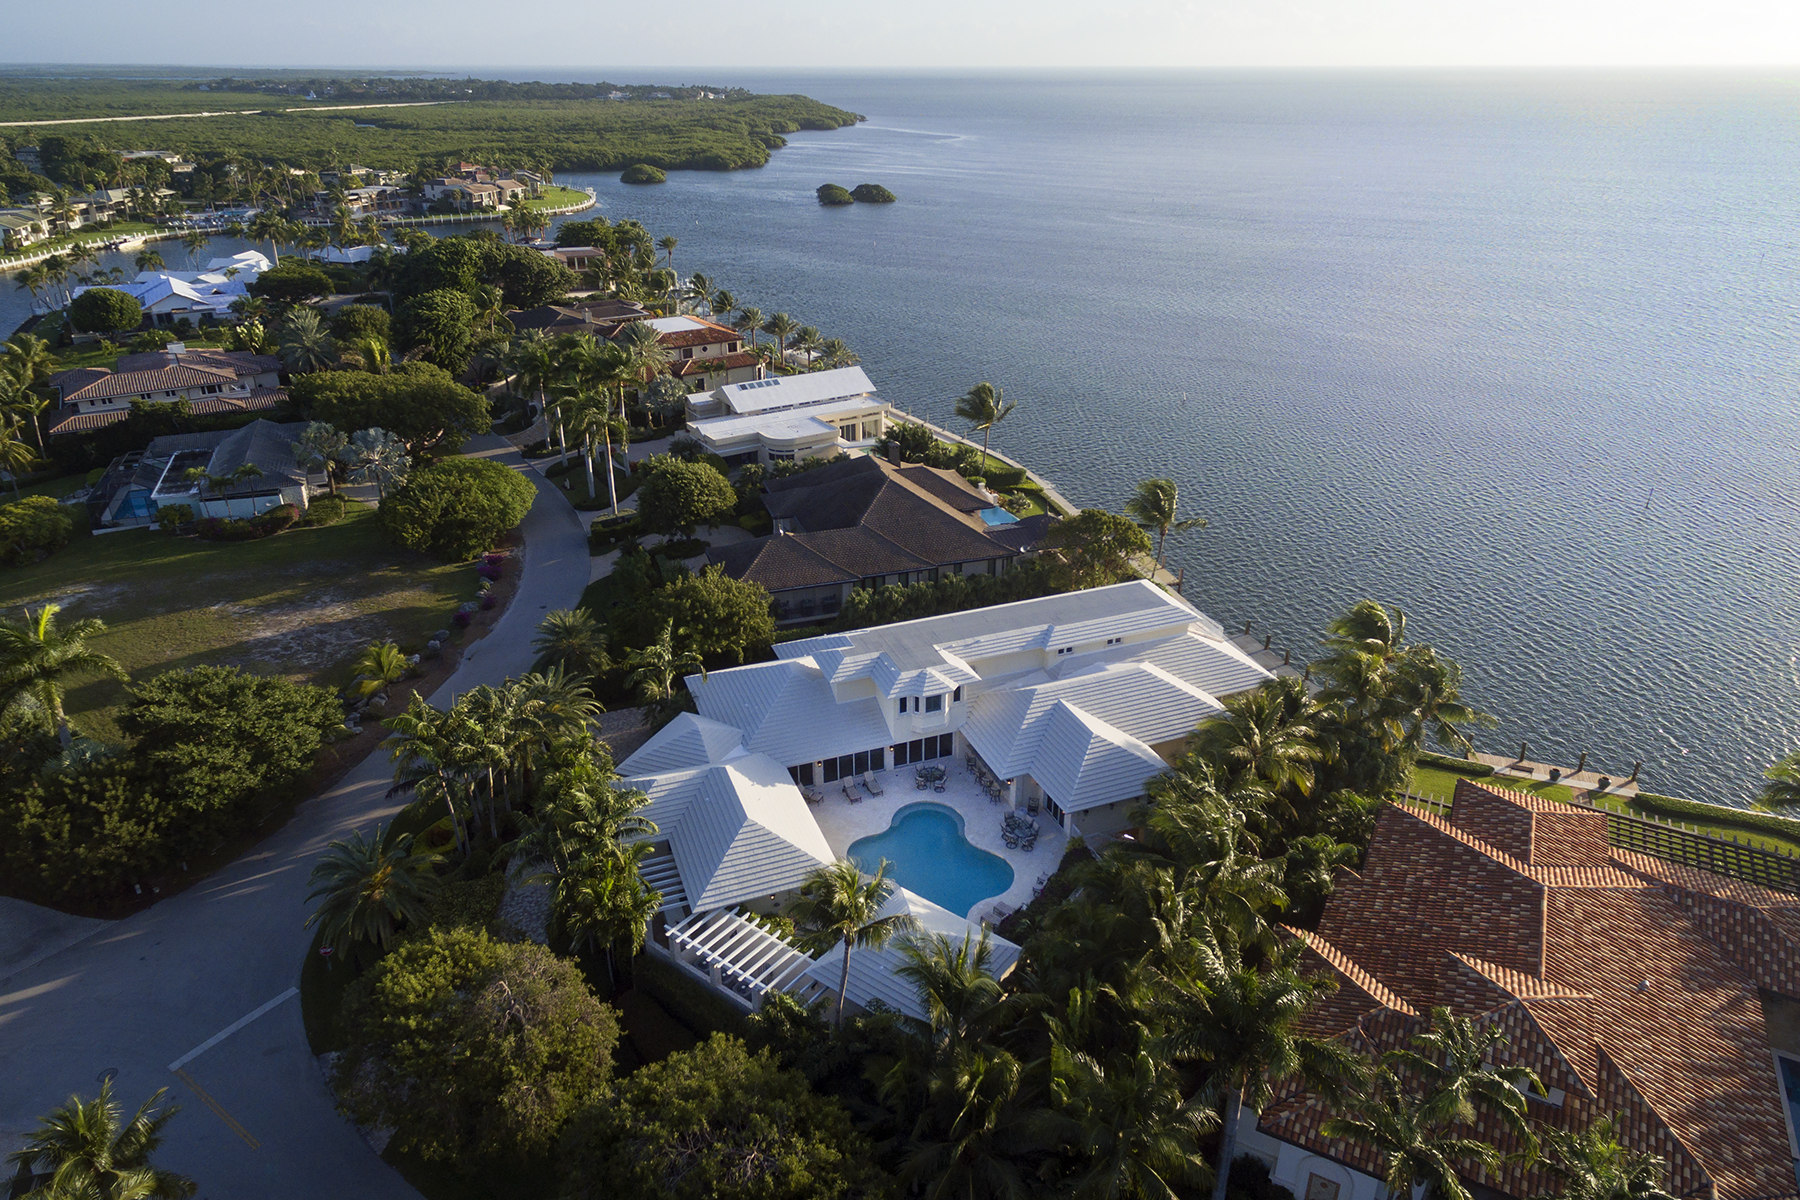 Casa Unifamiliar por un Venta en Extraordinary Oceanfront Home at Ocean Reef 24 Angelfish Cay Drive, Ocean Reef Community, Key Largo, Florida, 33037 Estados Unidos